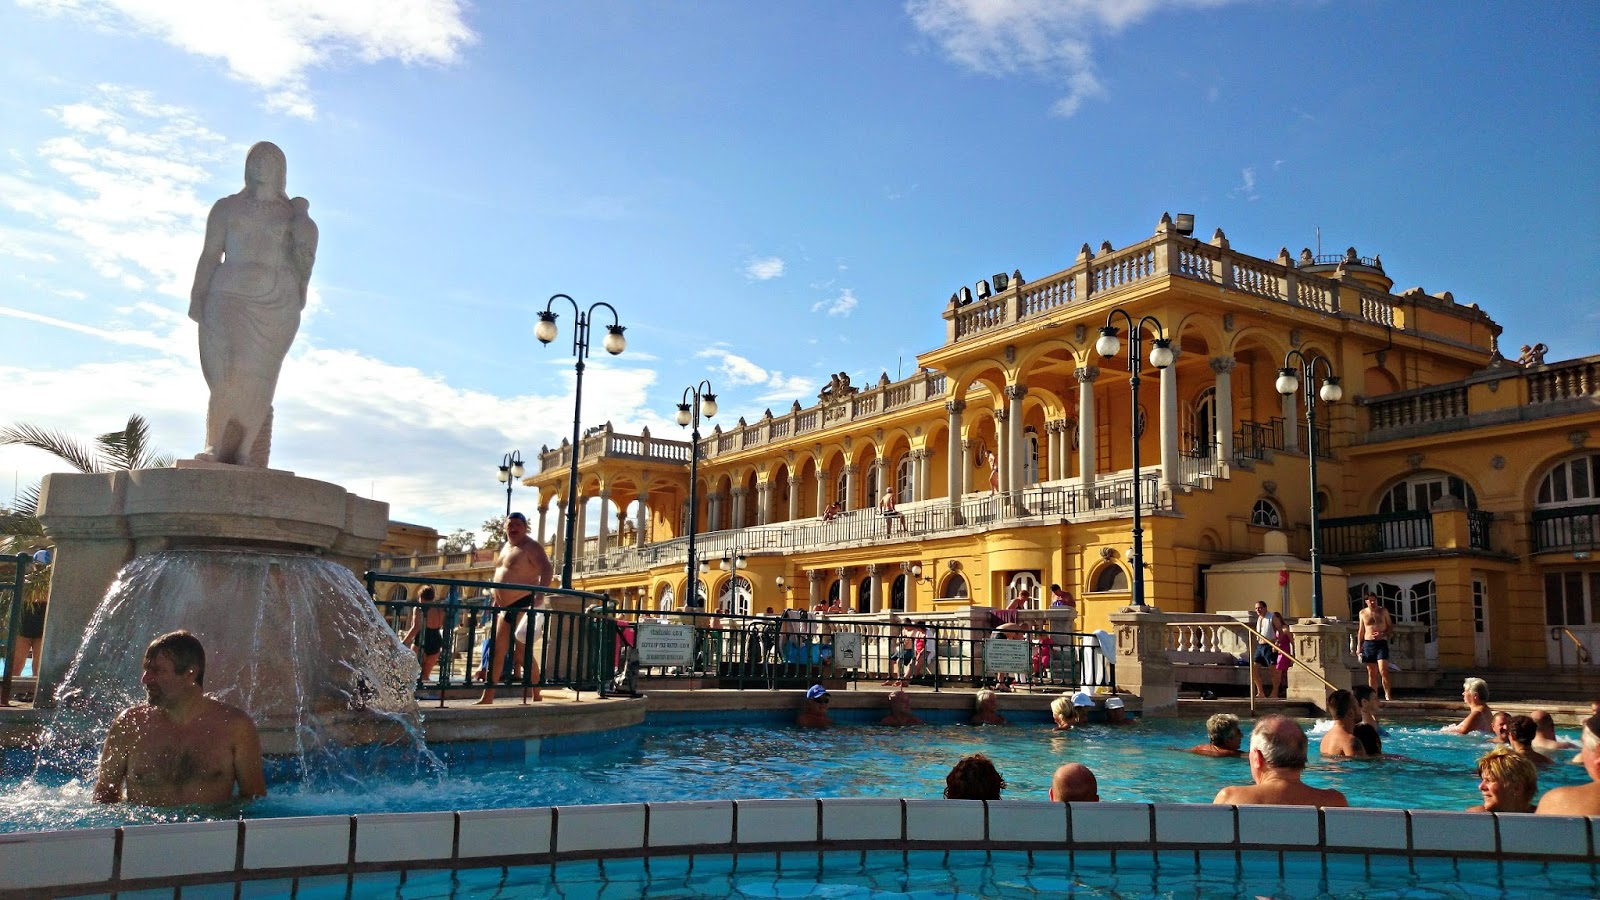 szechenyi thermal baths budapest